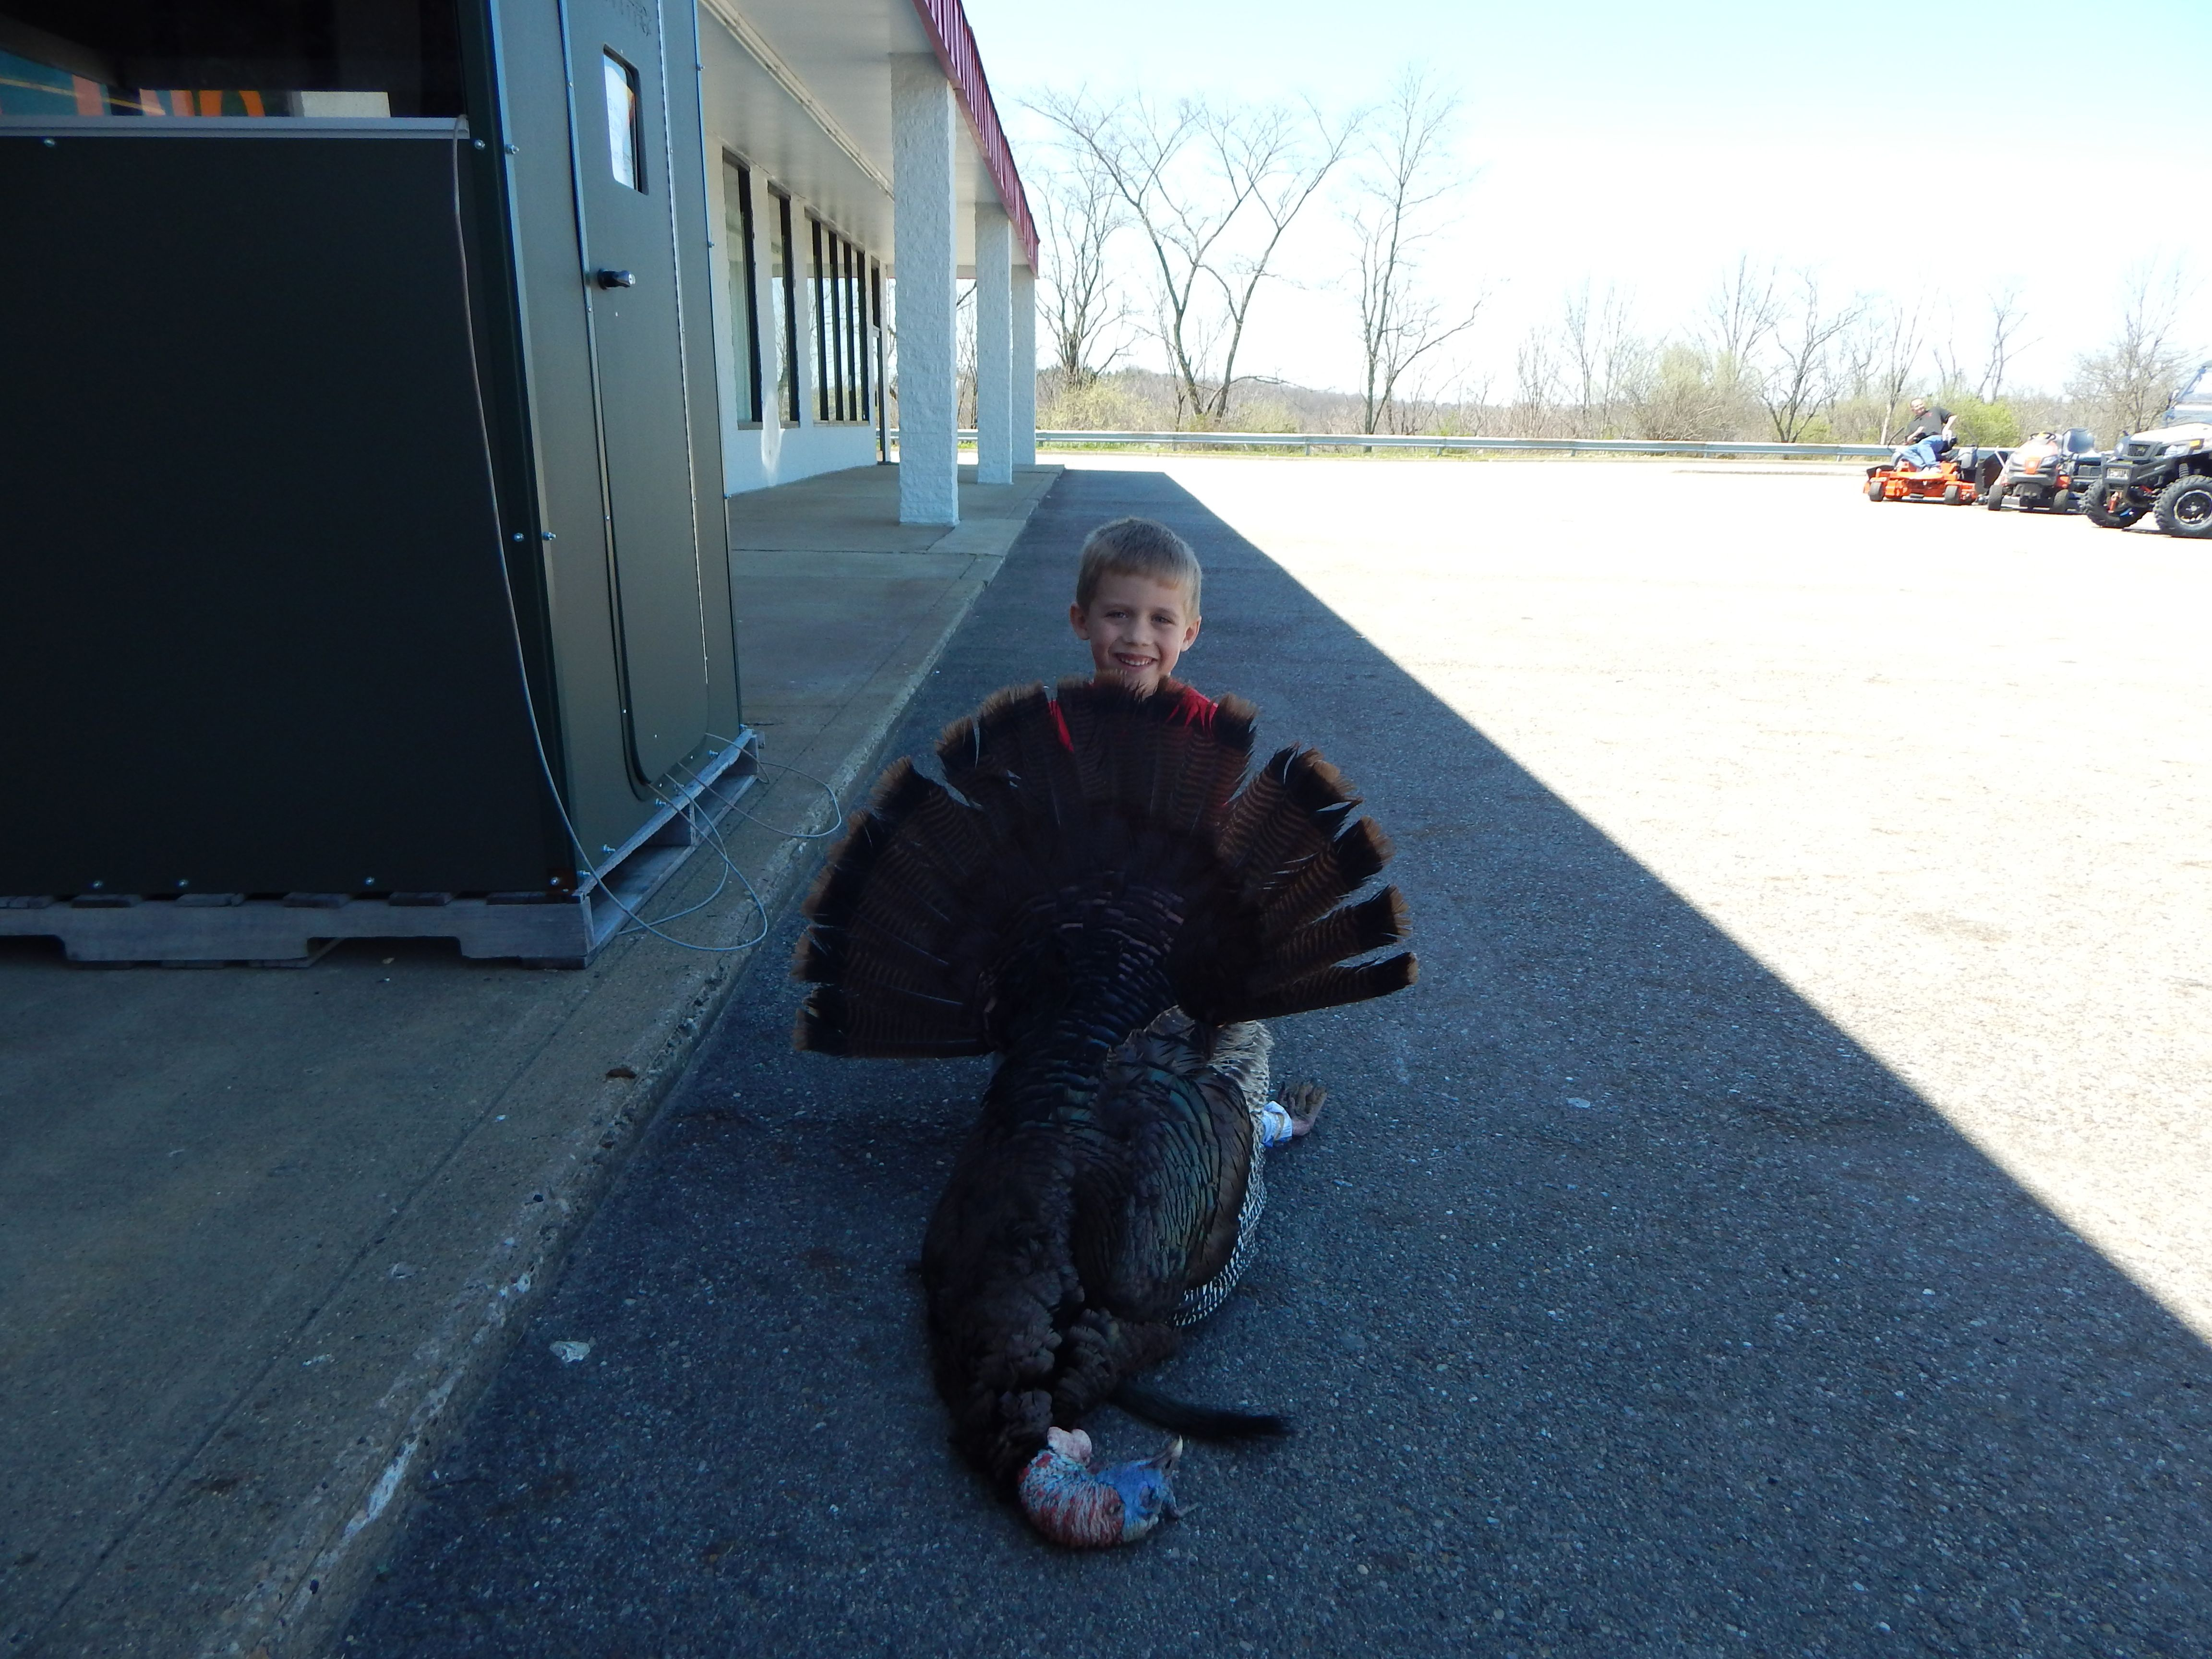 KILLED 4-16-16 BO EVERETT AGE 7 SPUR ARE 1 INCH AND 1